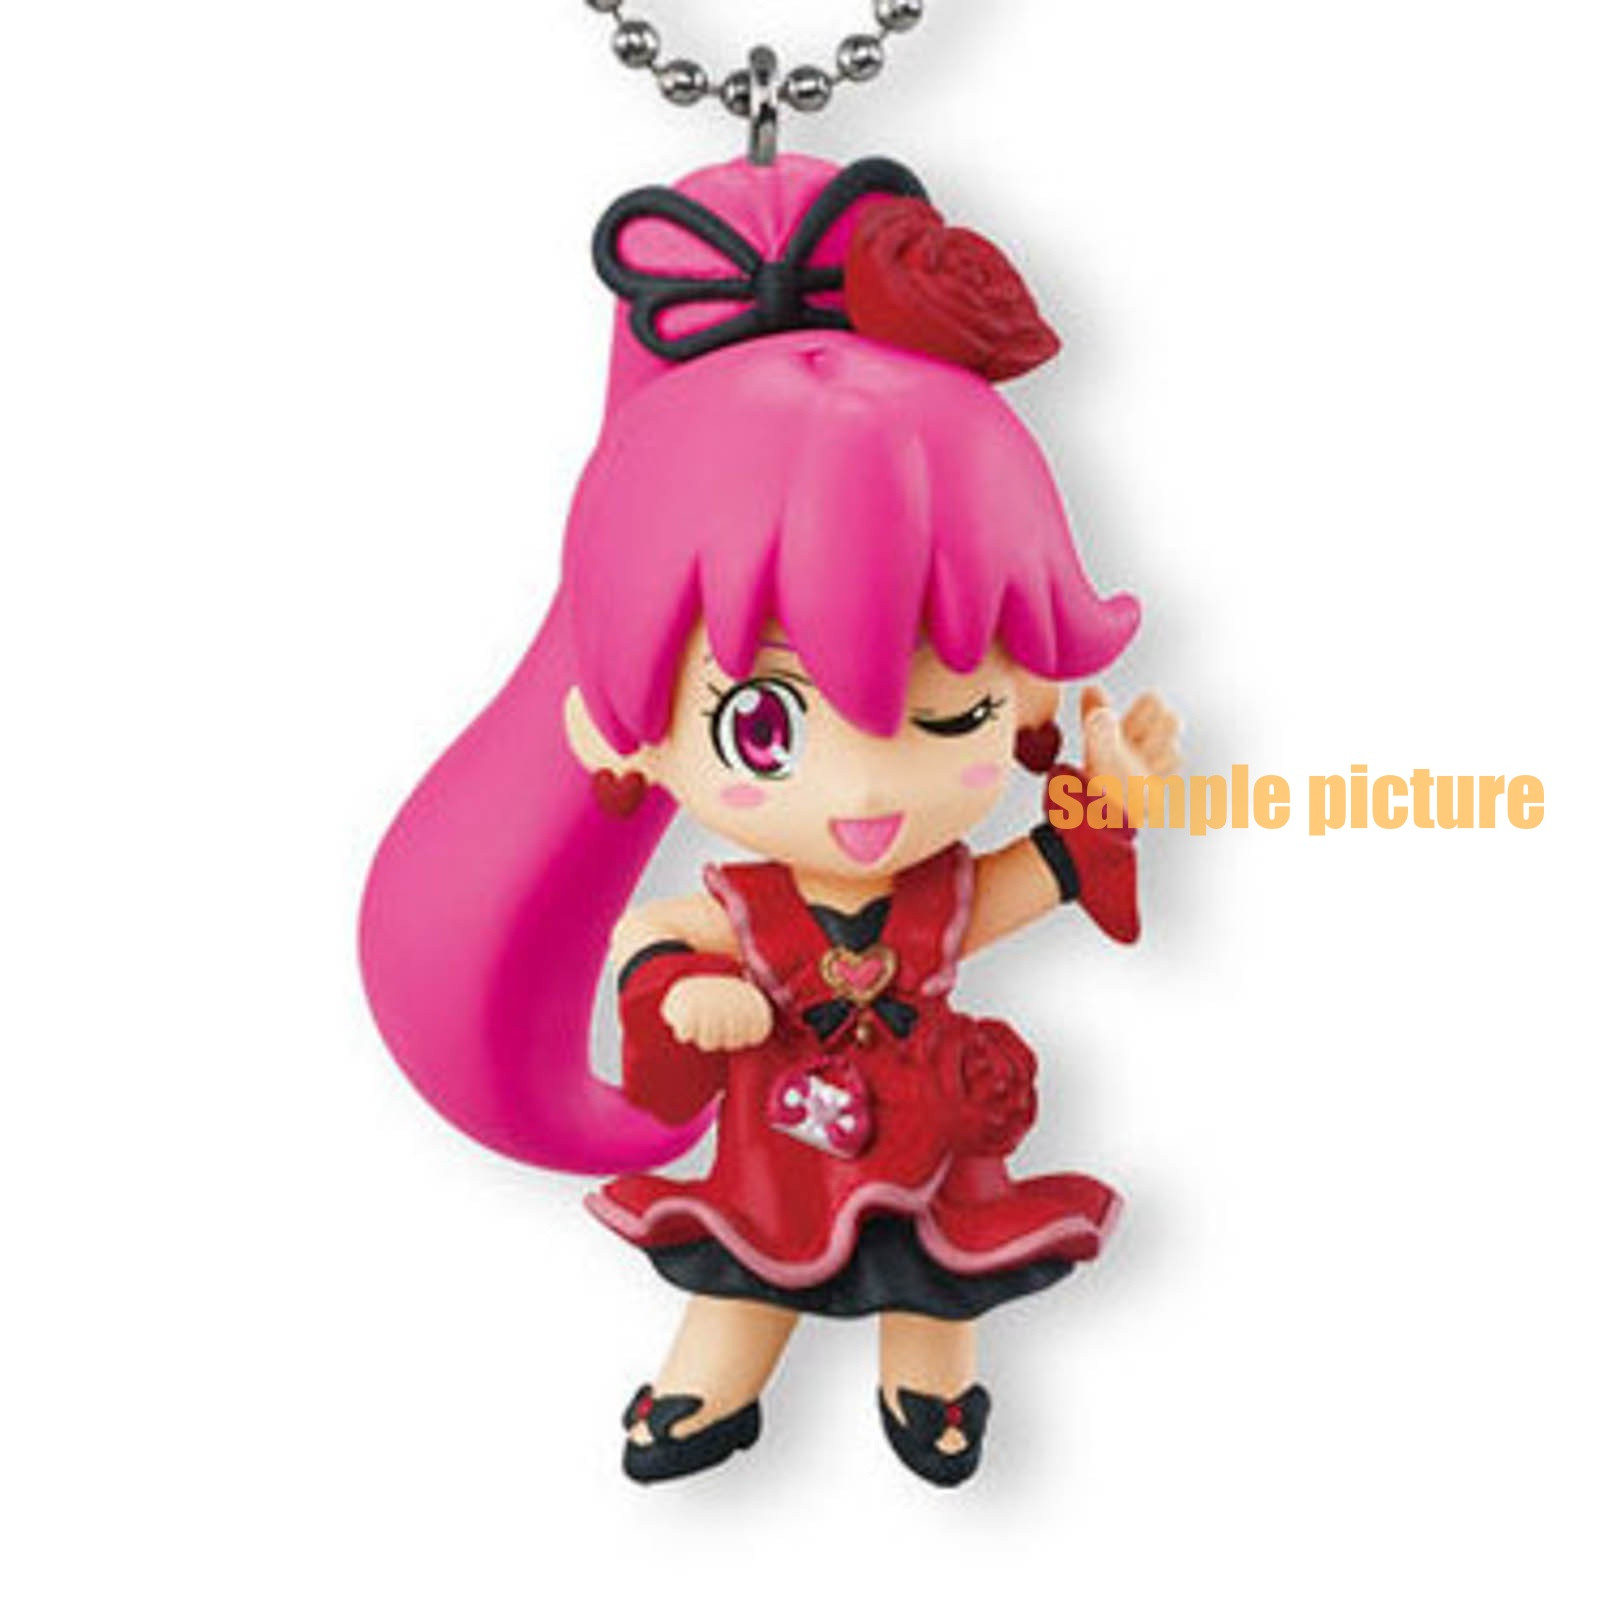 HappinessCharge PreCure! Cure Lovely (Cherry flamenco ver.) Mascot Figure Ball Keychain JAPAN ANIME